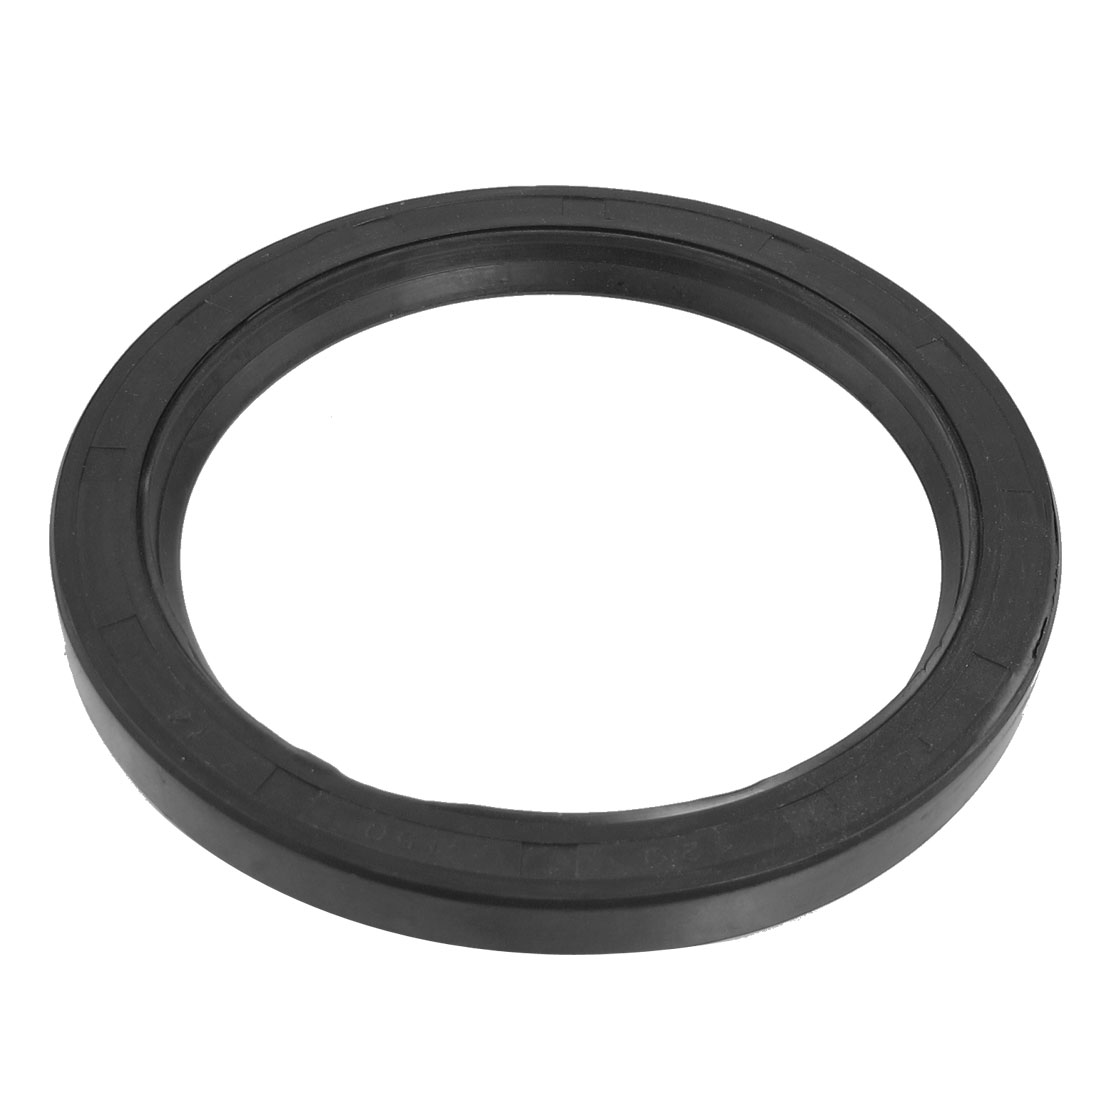 Black Nitrile Rubber Dual Lips Oil Shaft Seal TC 120mm x 150mm x 14mm